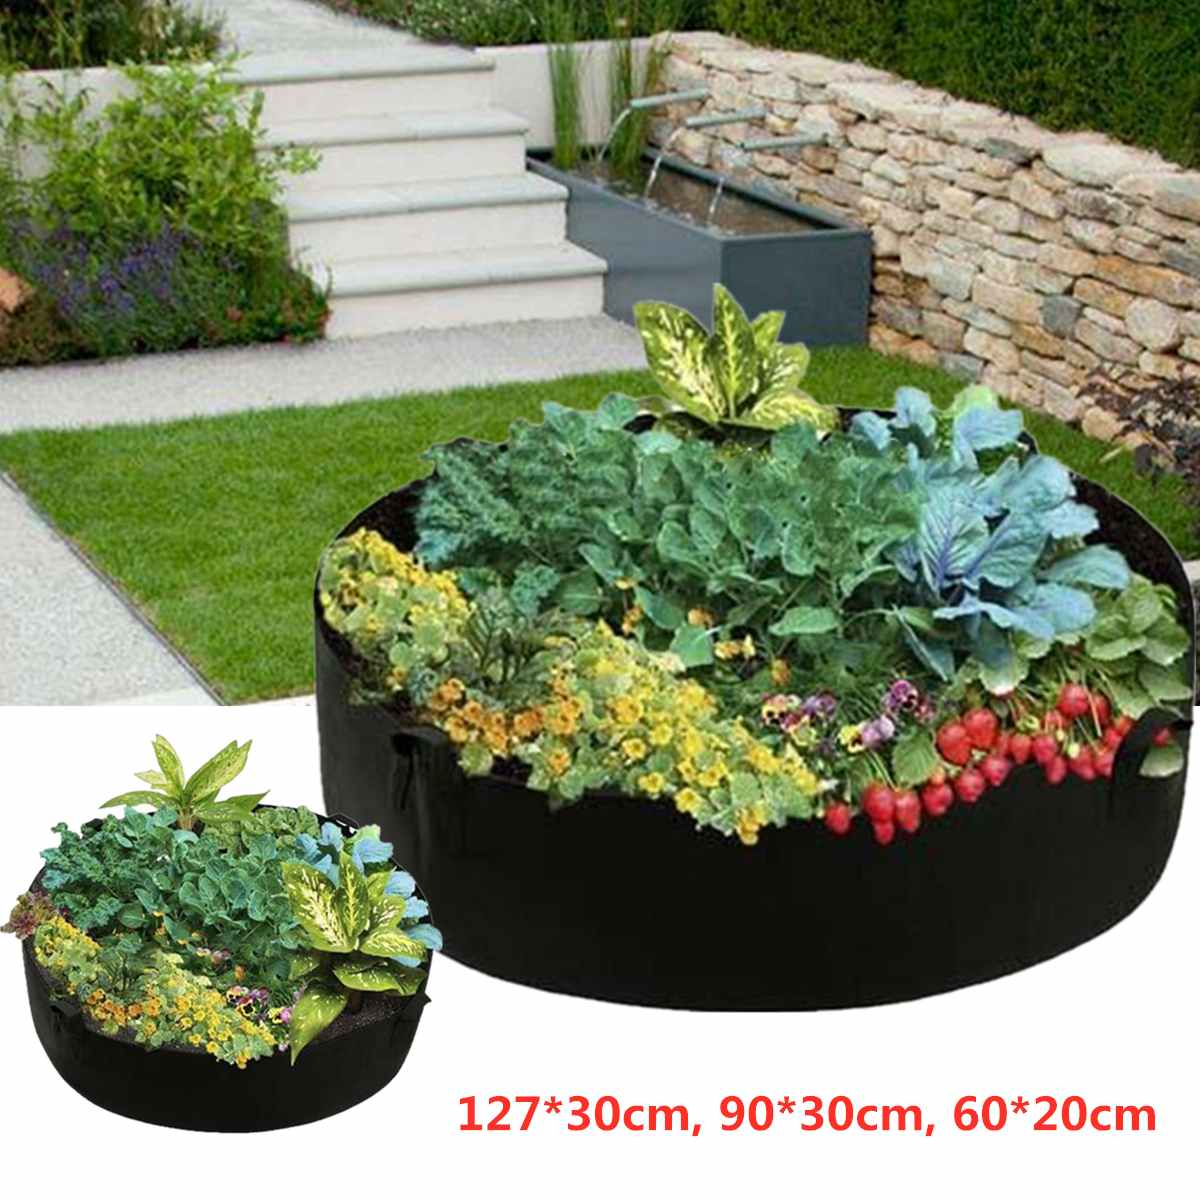 Us 7 0 52 Off Garden Raised Plant Bed Flower Planter Elevated Vegetable Box Planting Grow Bag Round Container Growbags Nursery Pot In